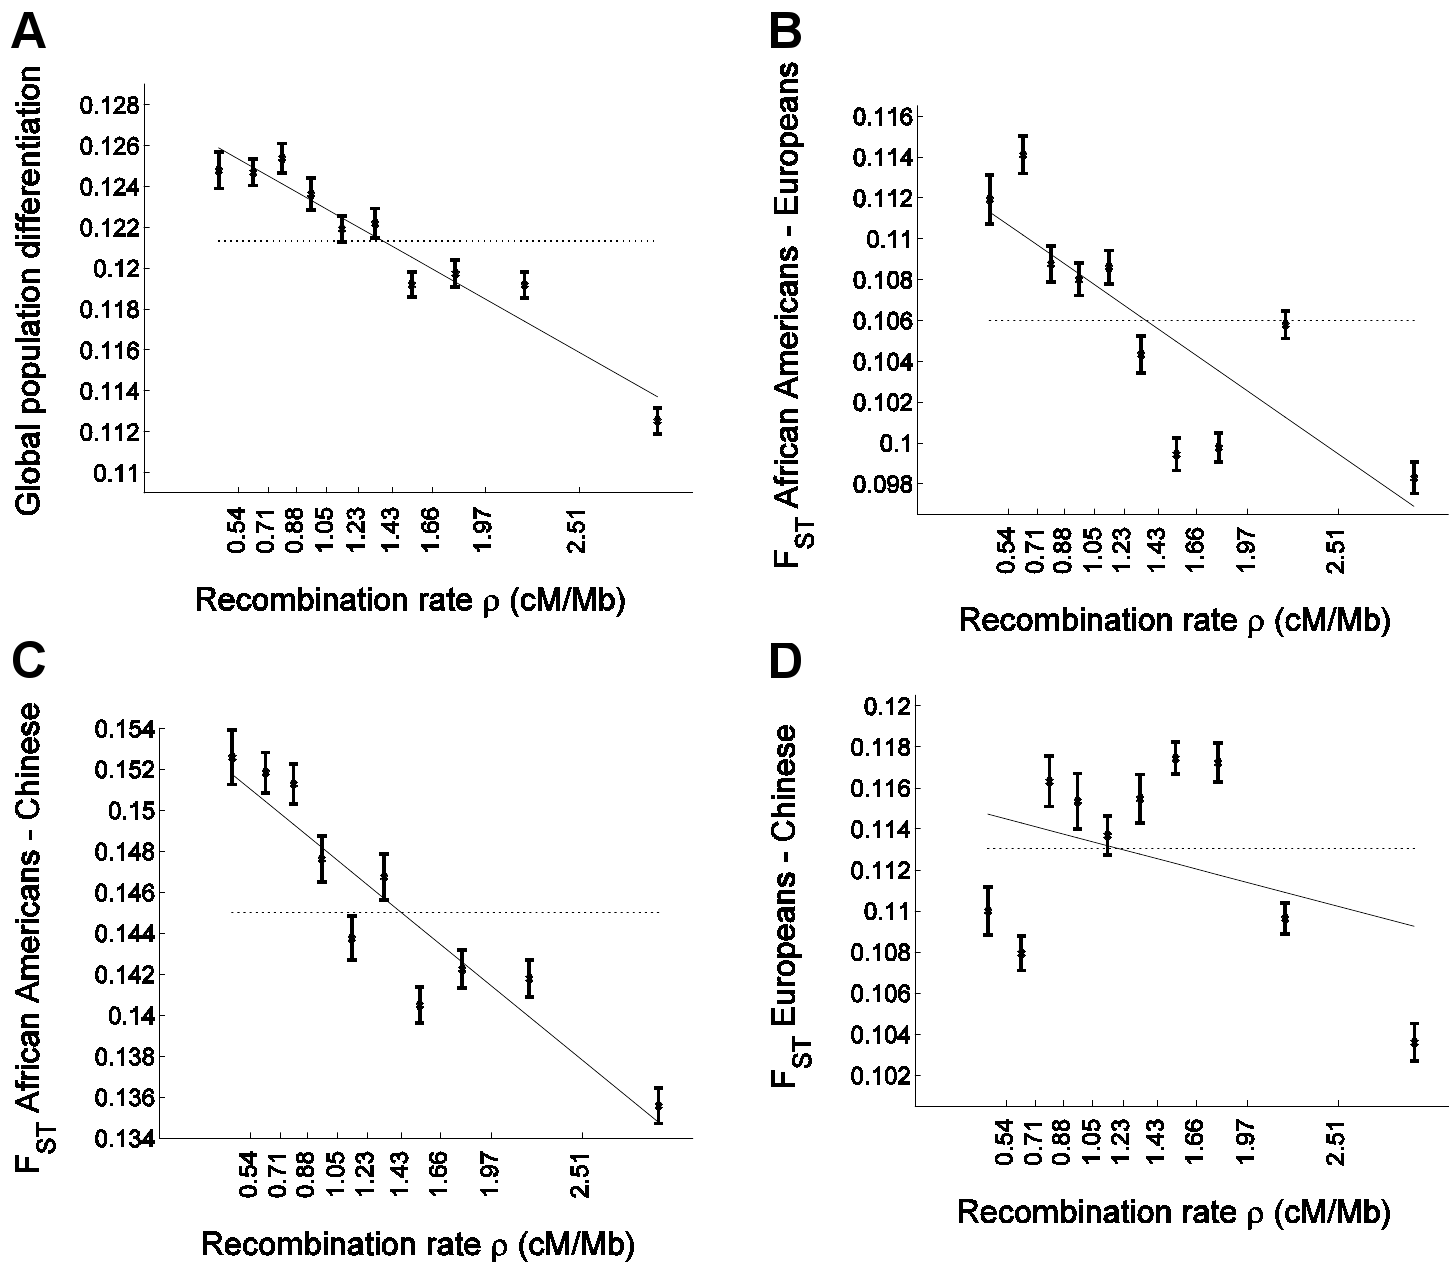 Population differentiation in allele frequencies is inversely correlated with recombination rate.